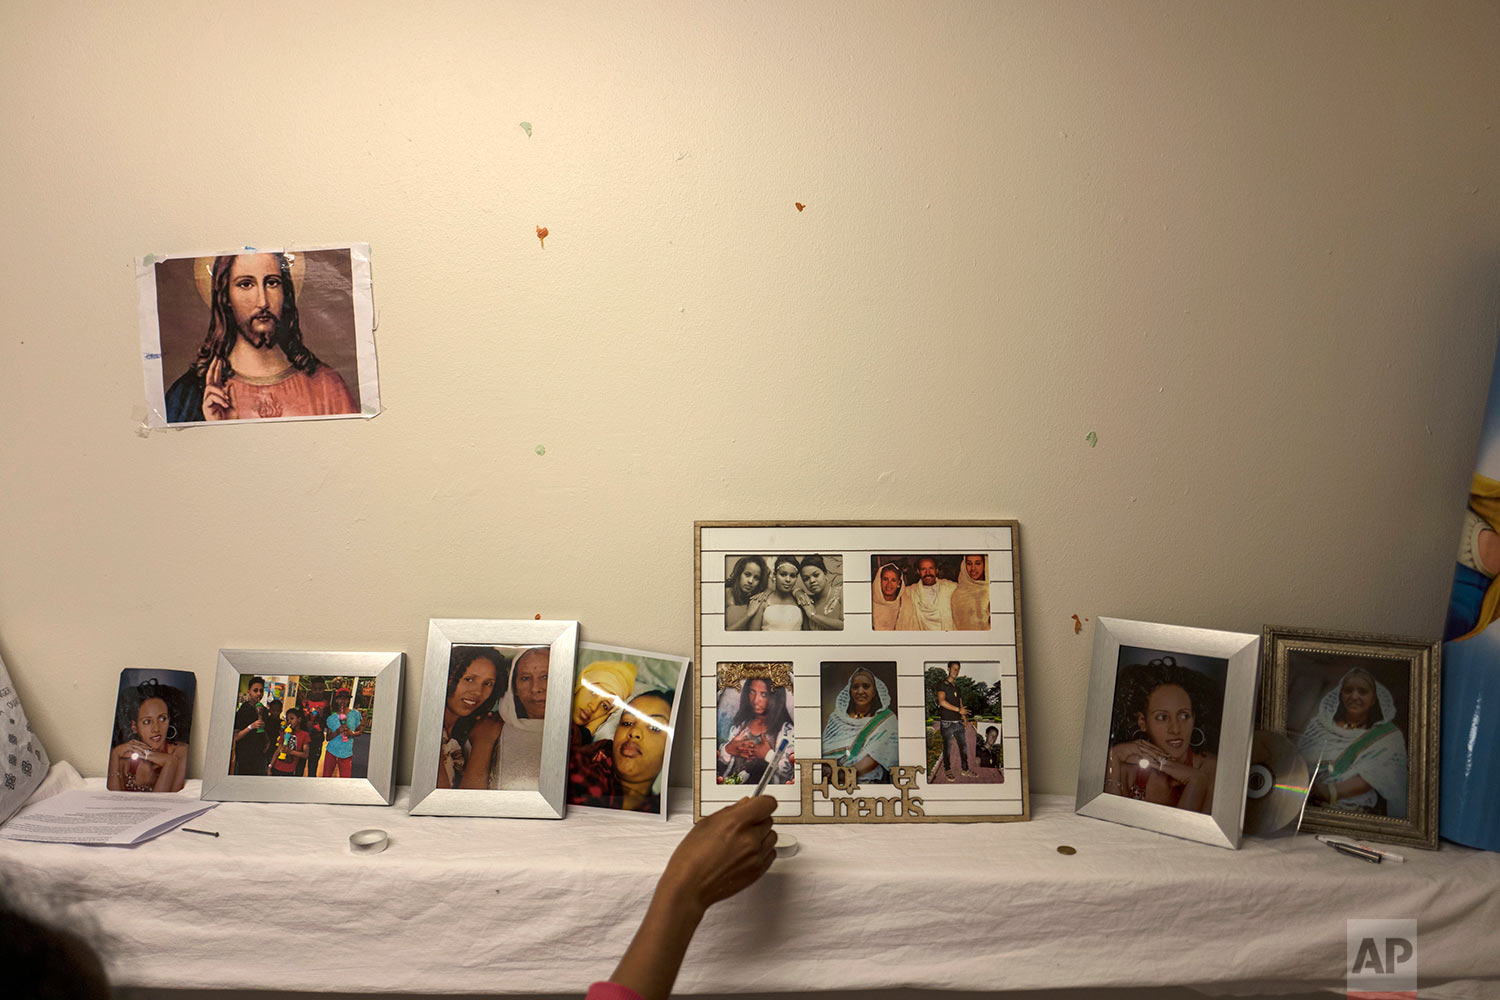 In this Sunday, July 9, 2017 photo, Eritrean migrant Ksanet Goitom, 23, points at pictures that she brought with her from Eritrea showing family members and friends, displayed at her room in the former prison of Bijlmerbajes in Amsterdam, Netherlands. (AP Photo/Muhammed Muheisen)